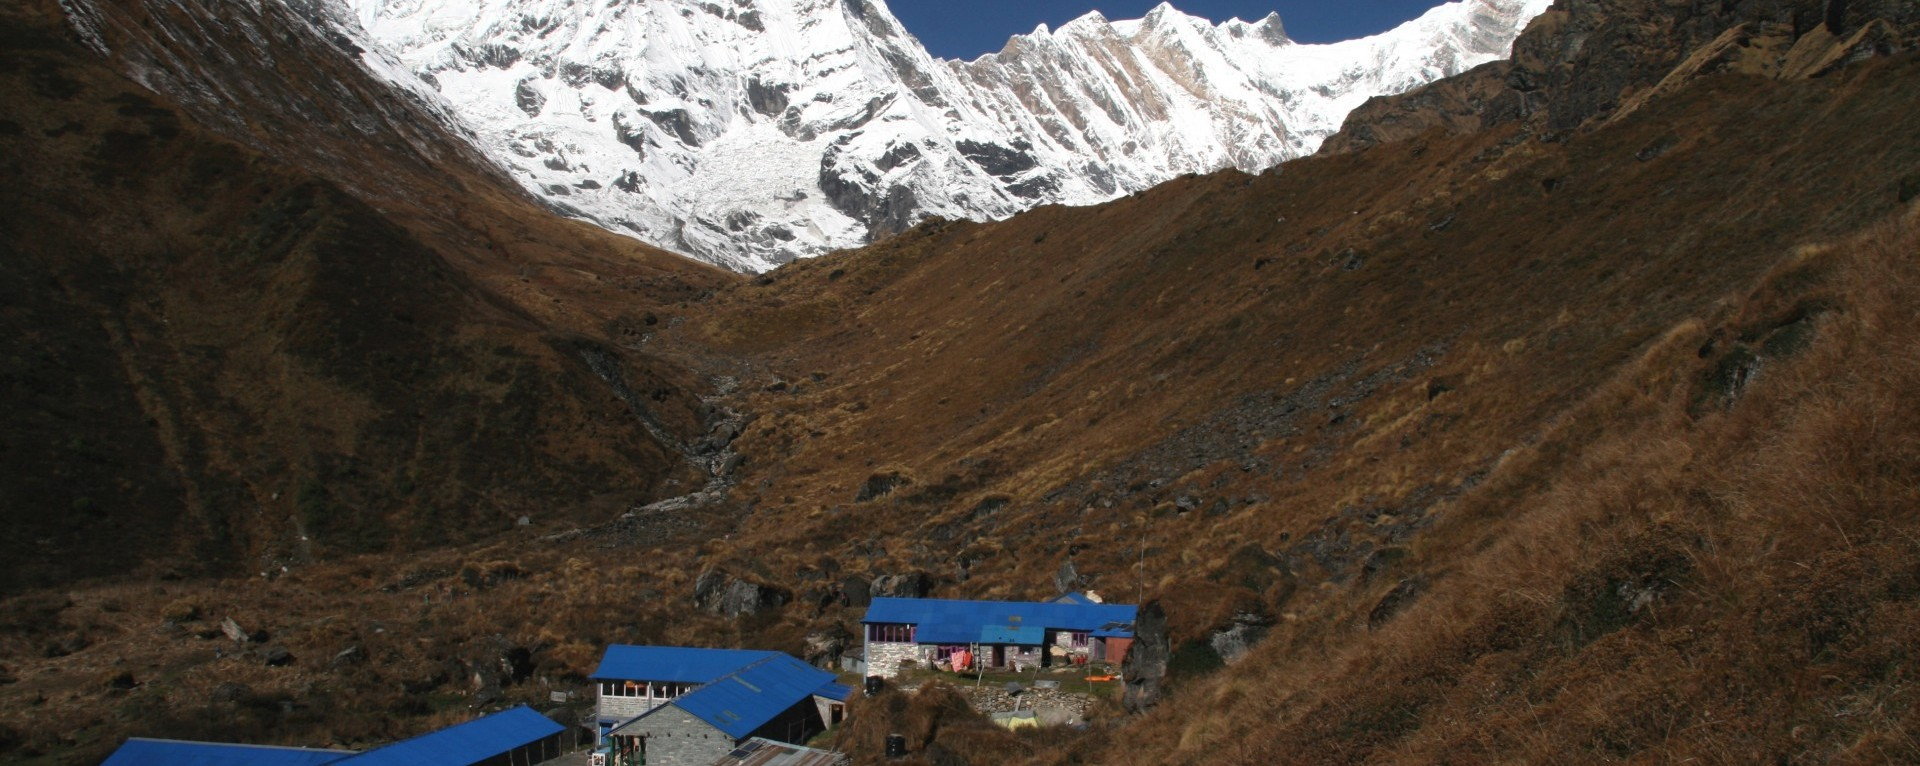 Machha Puchhre base camp